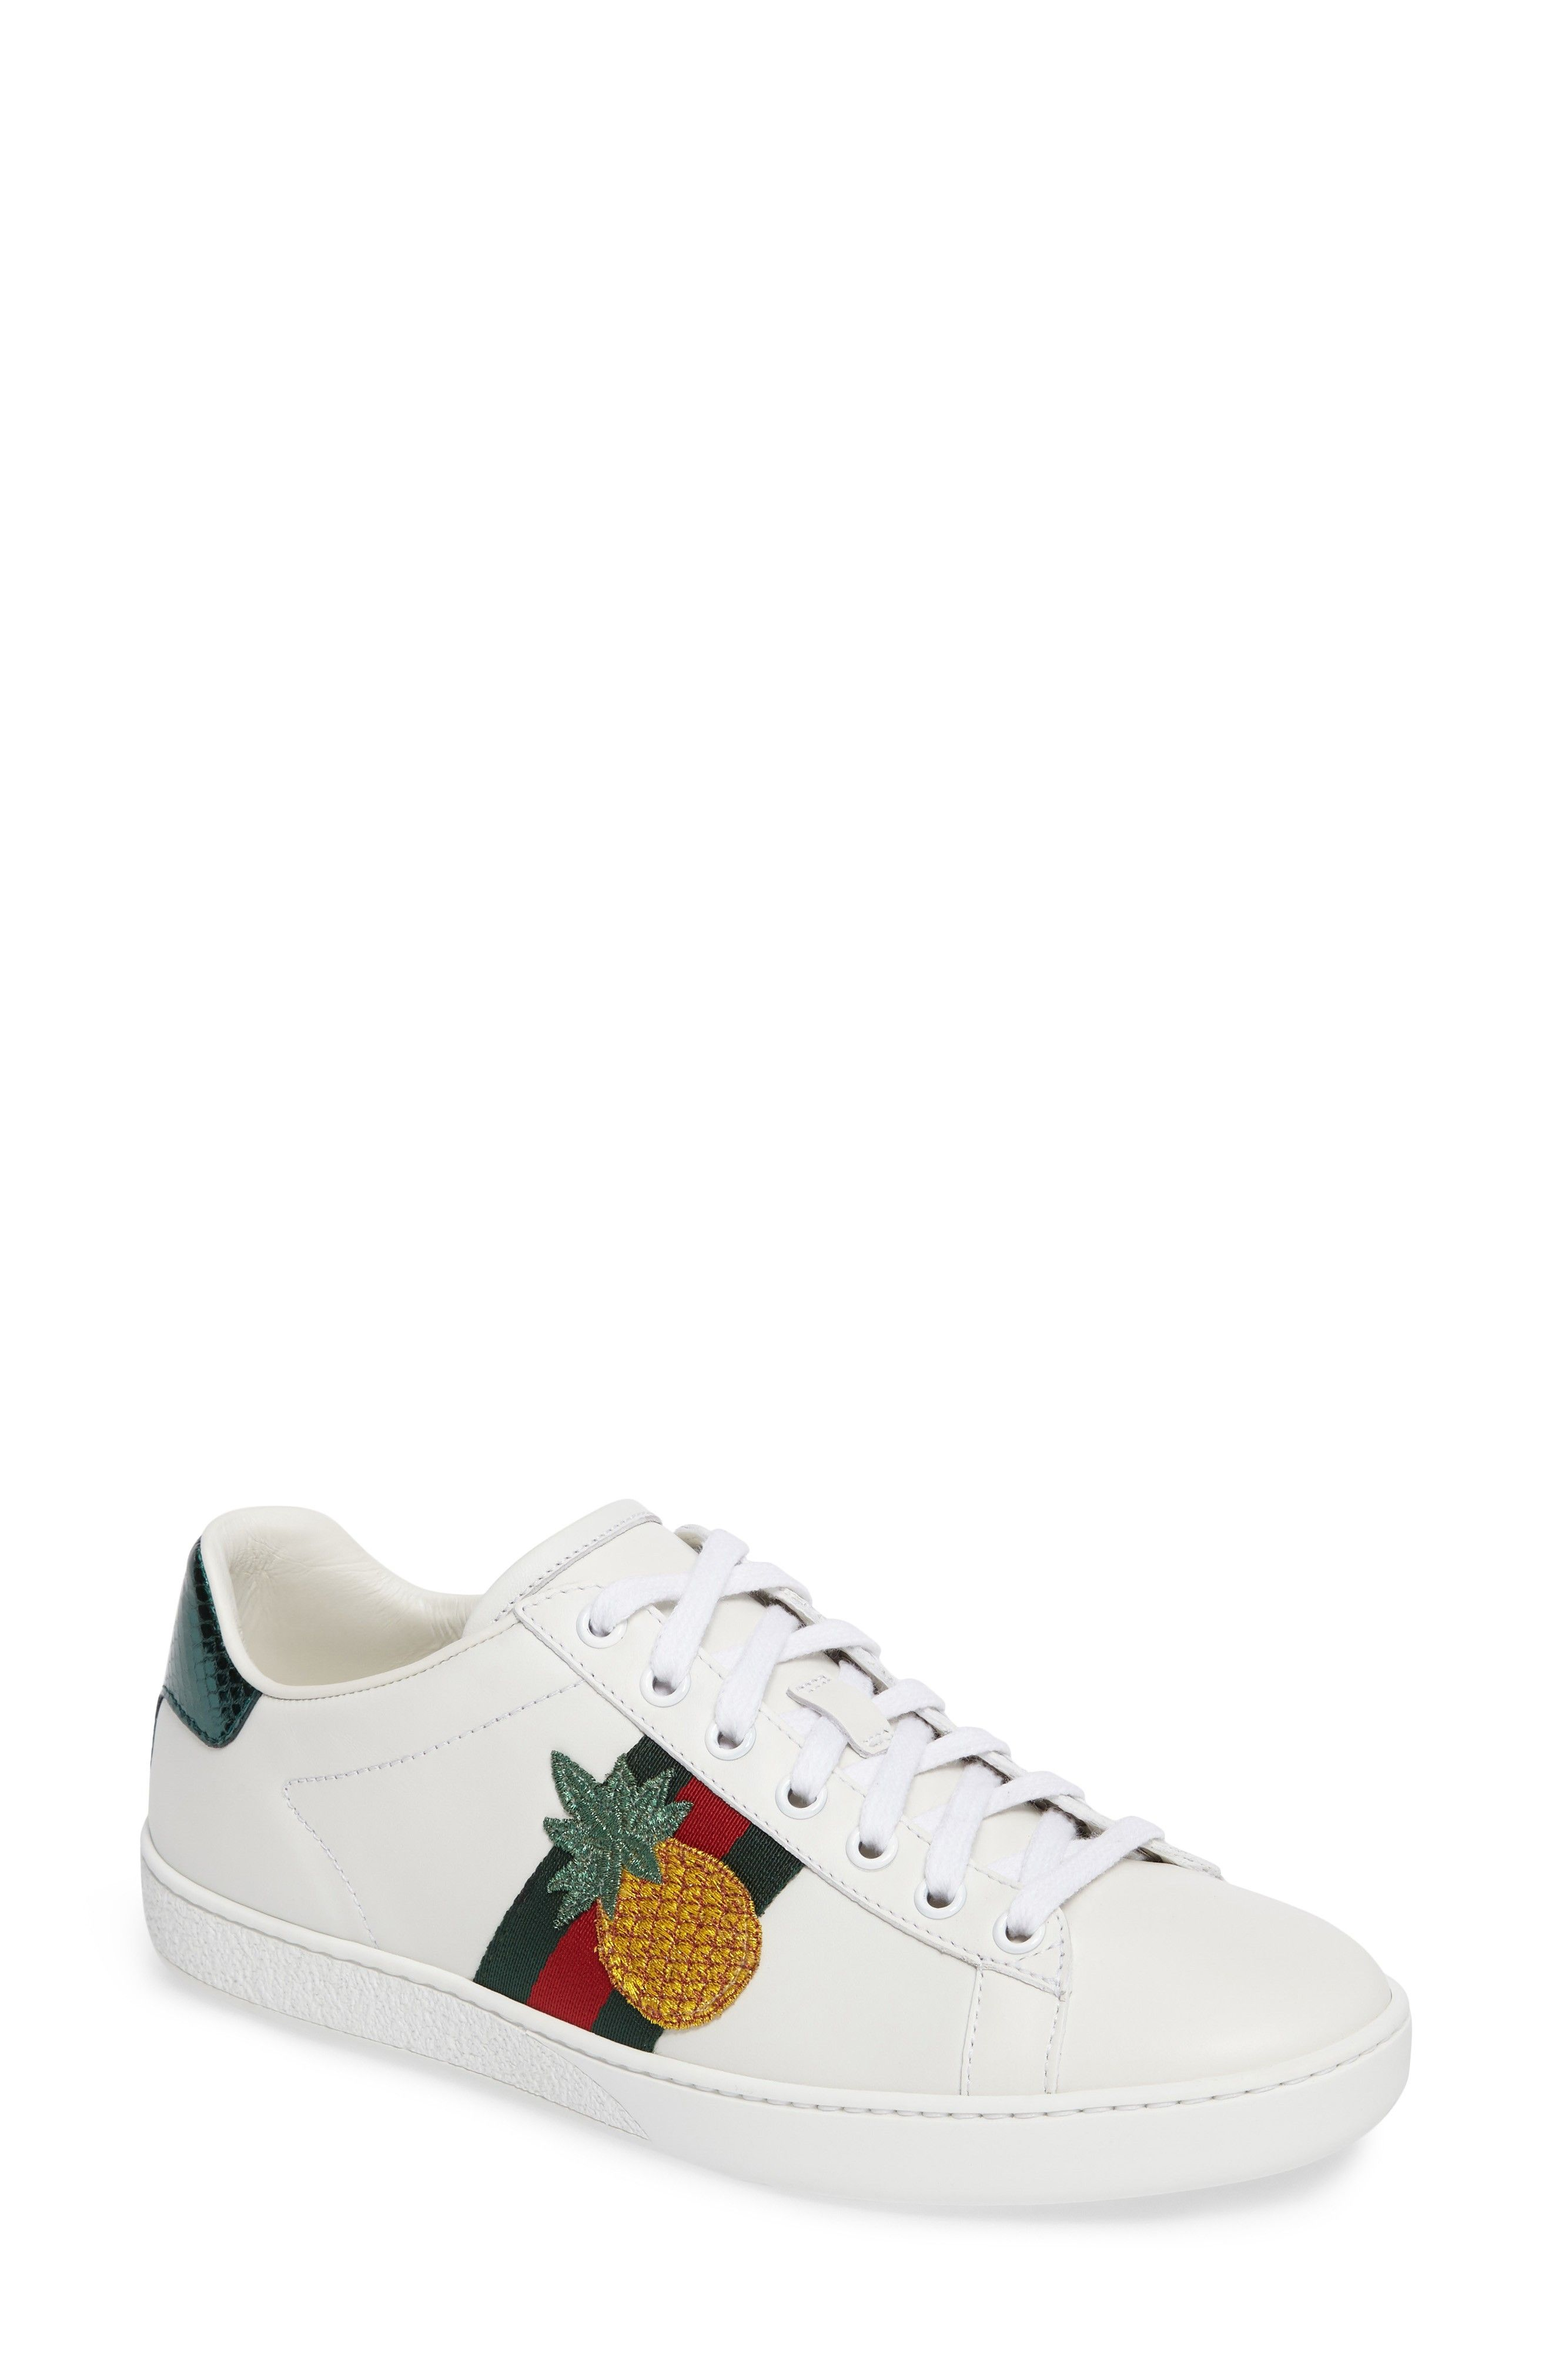 New GUCCI New Ace Pineapple Sneaker